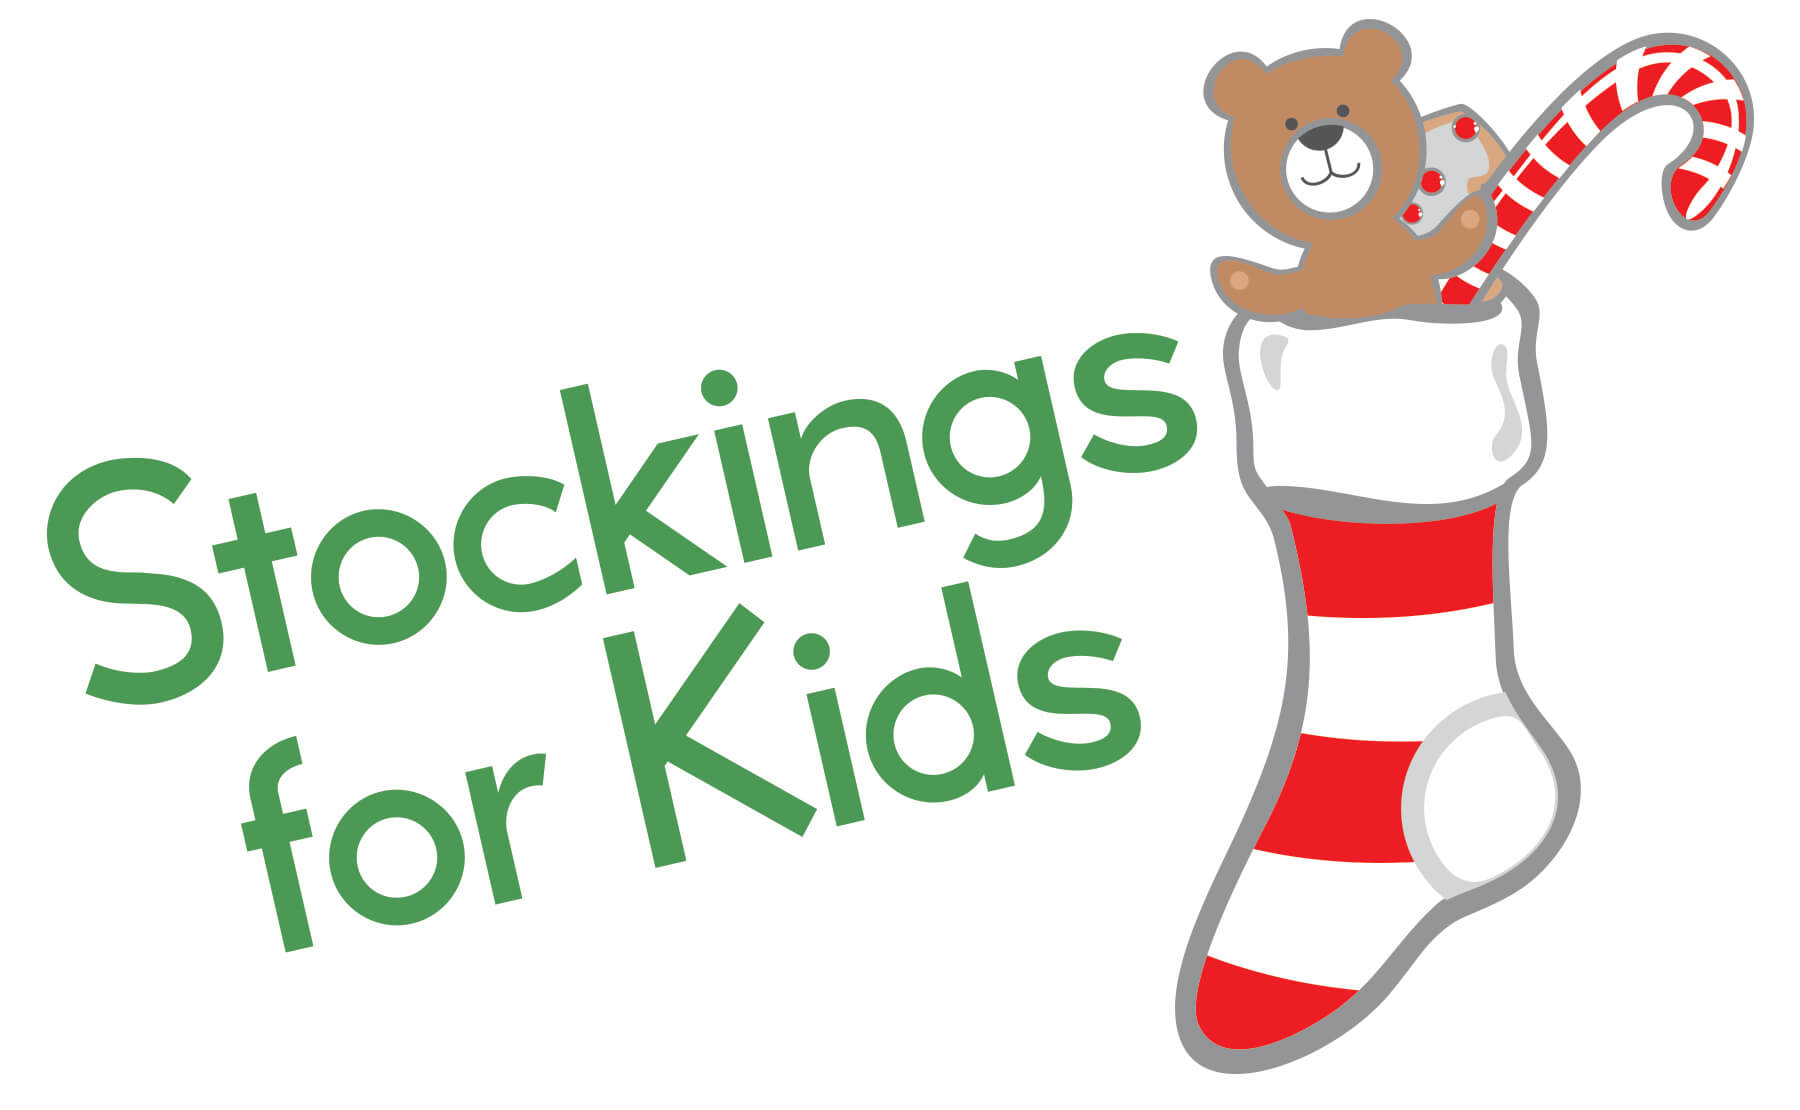 btm0816a-christmas-stockings-for-kids-logo-cropped